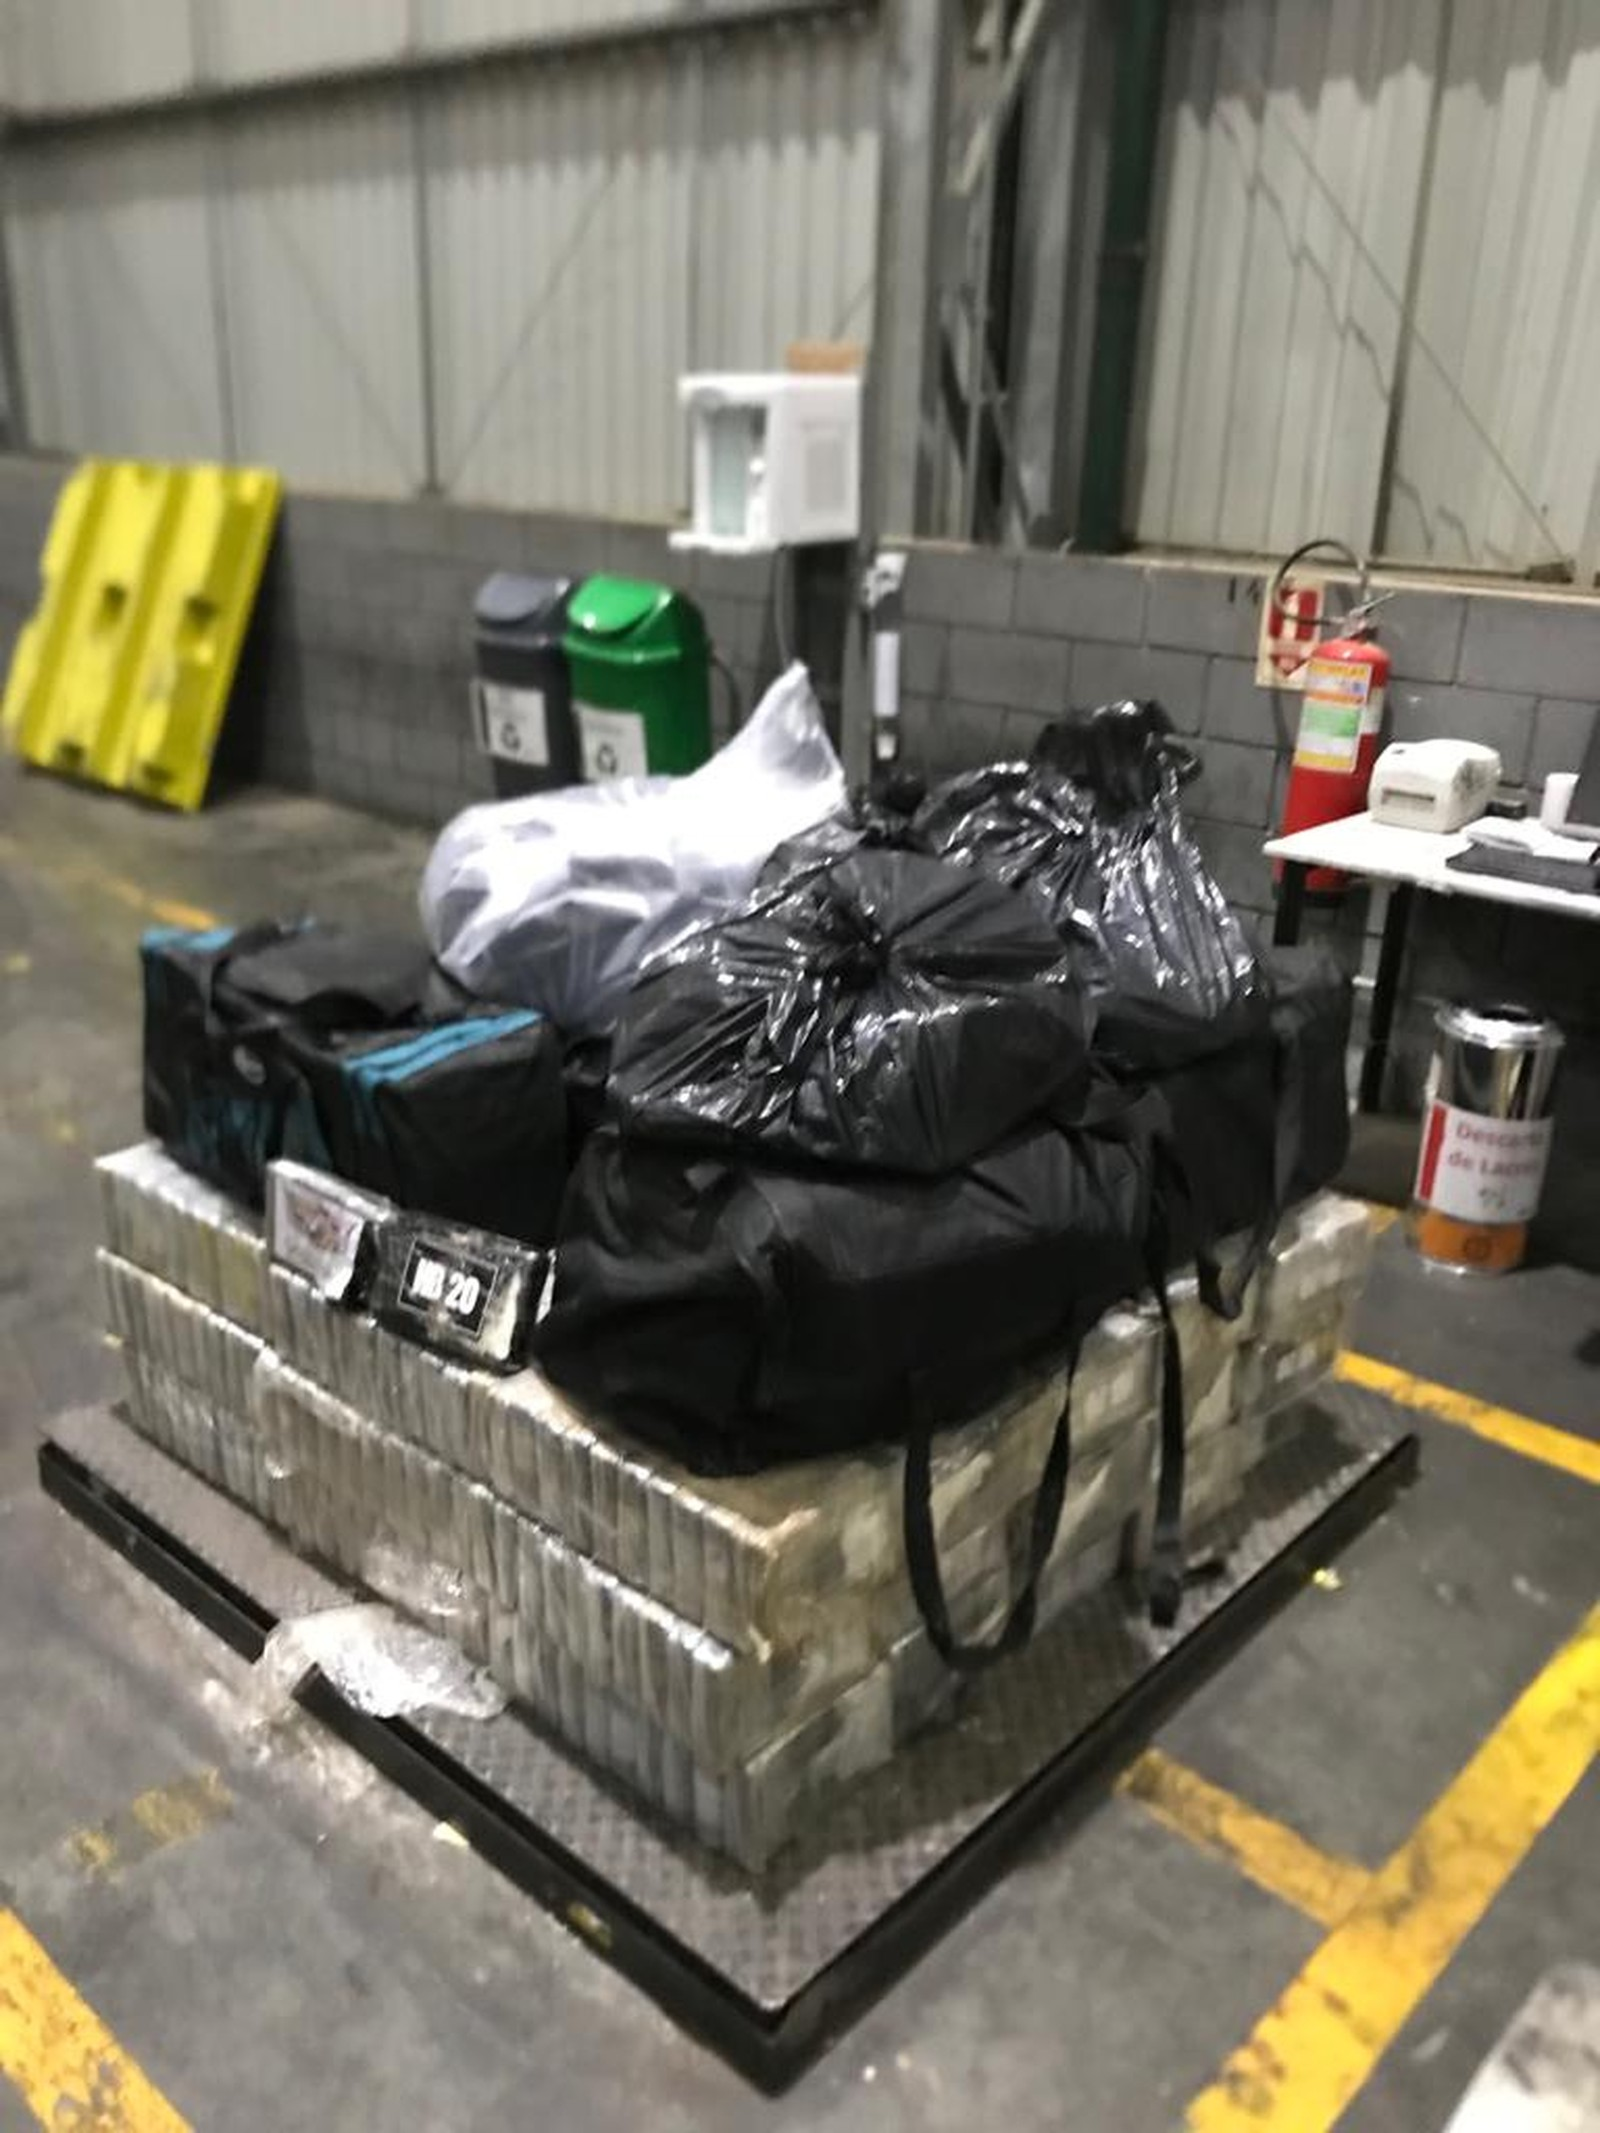 After Seizing 3.3 Tons Of Cocaine, Federal Police Find Another 734 kg At A Home On The Coast Of Paraná